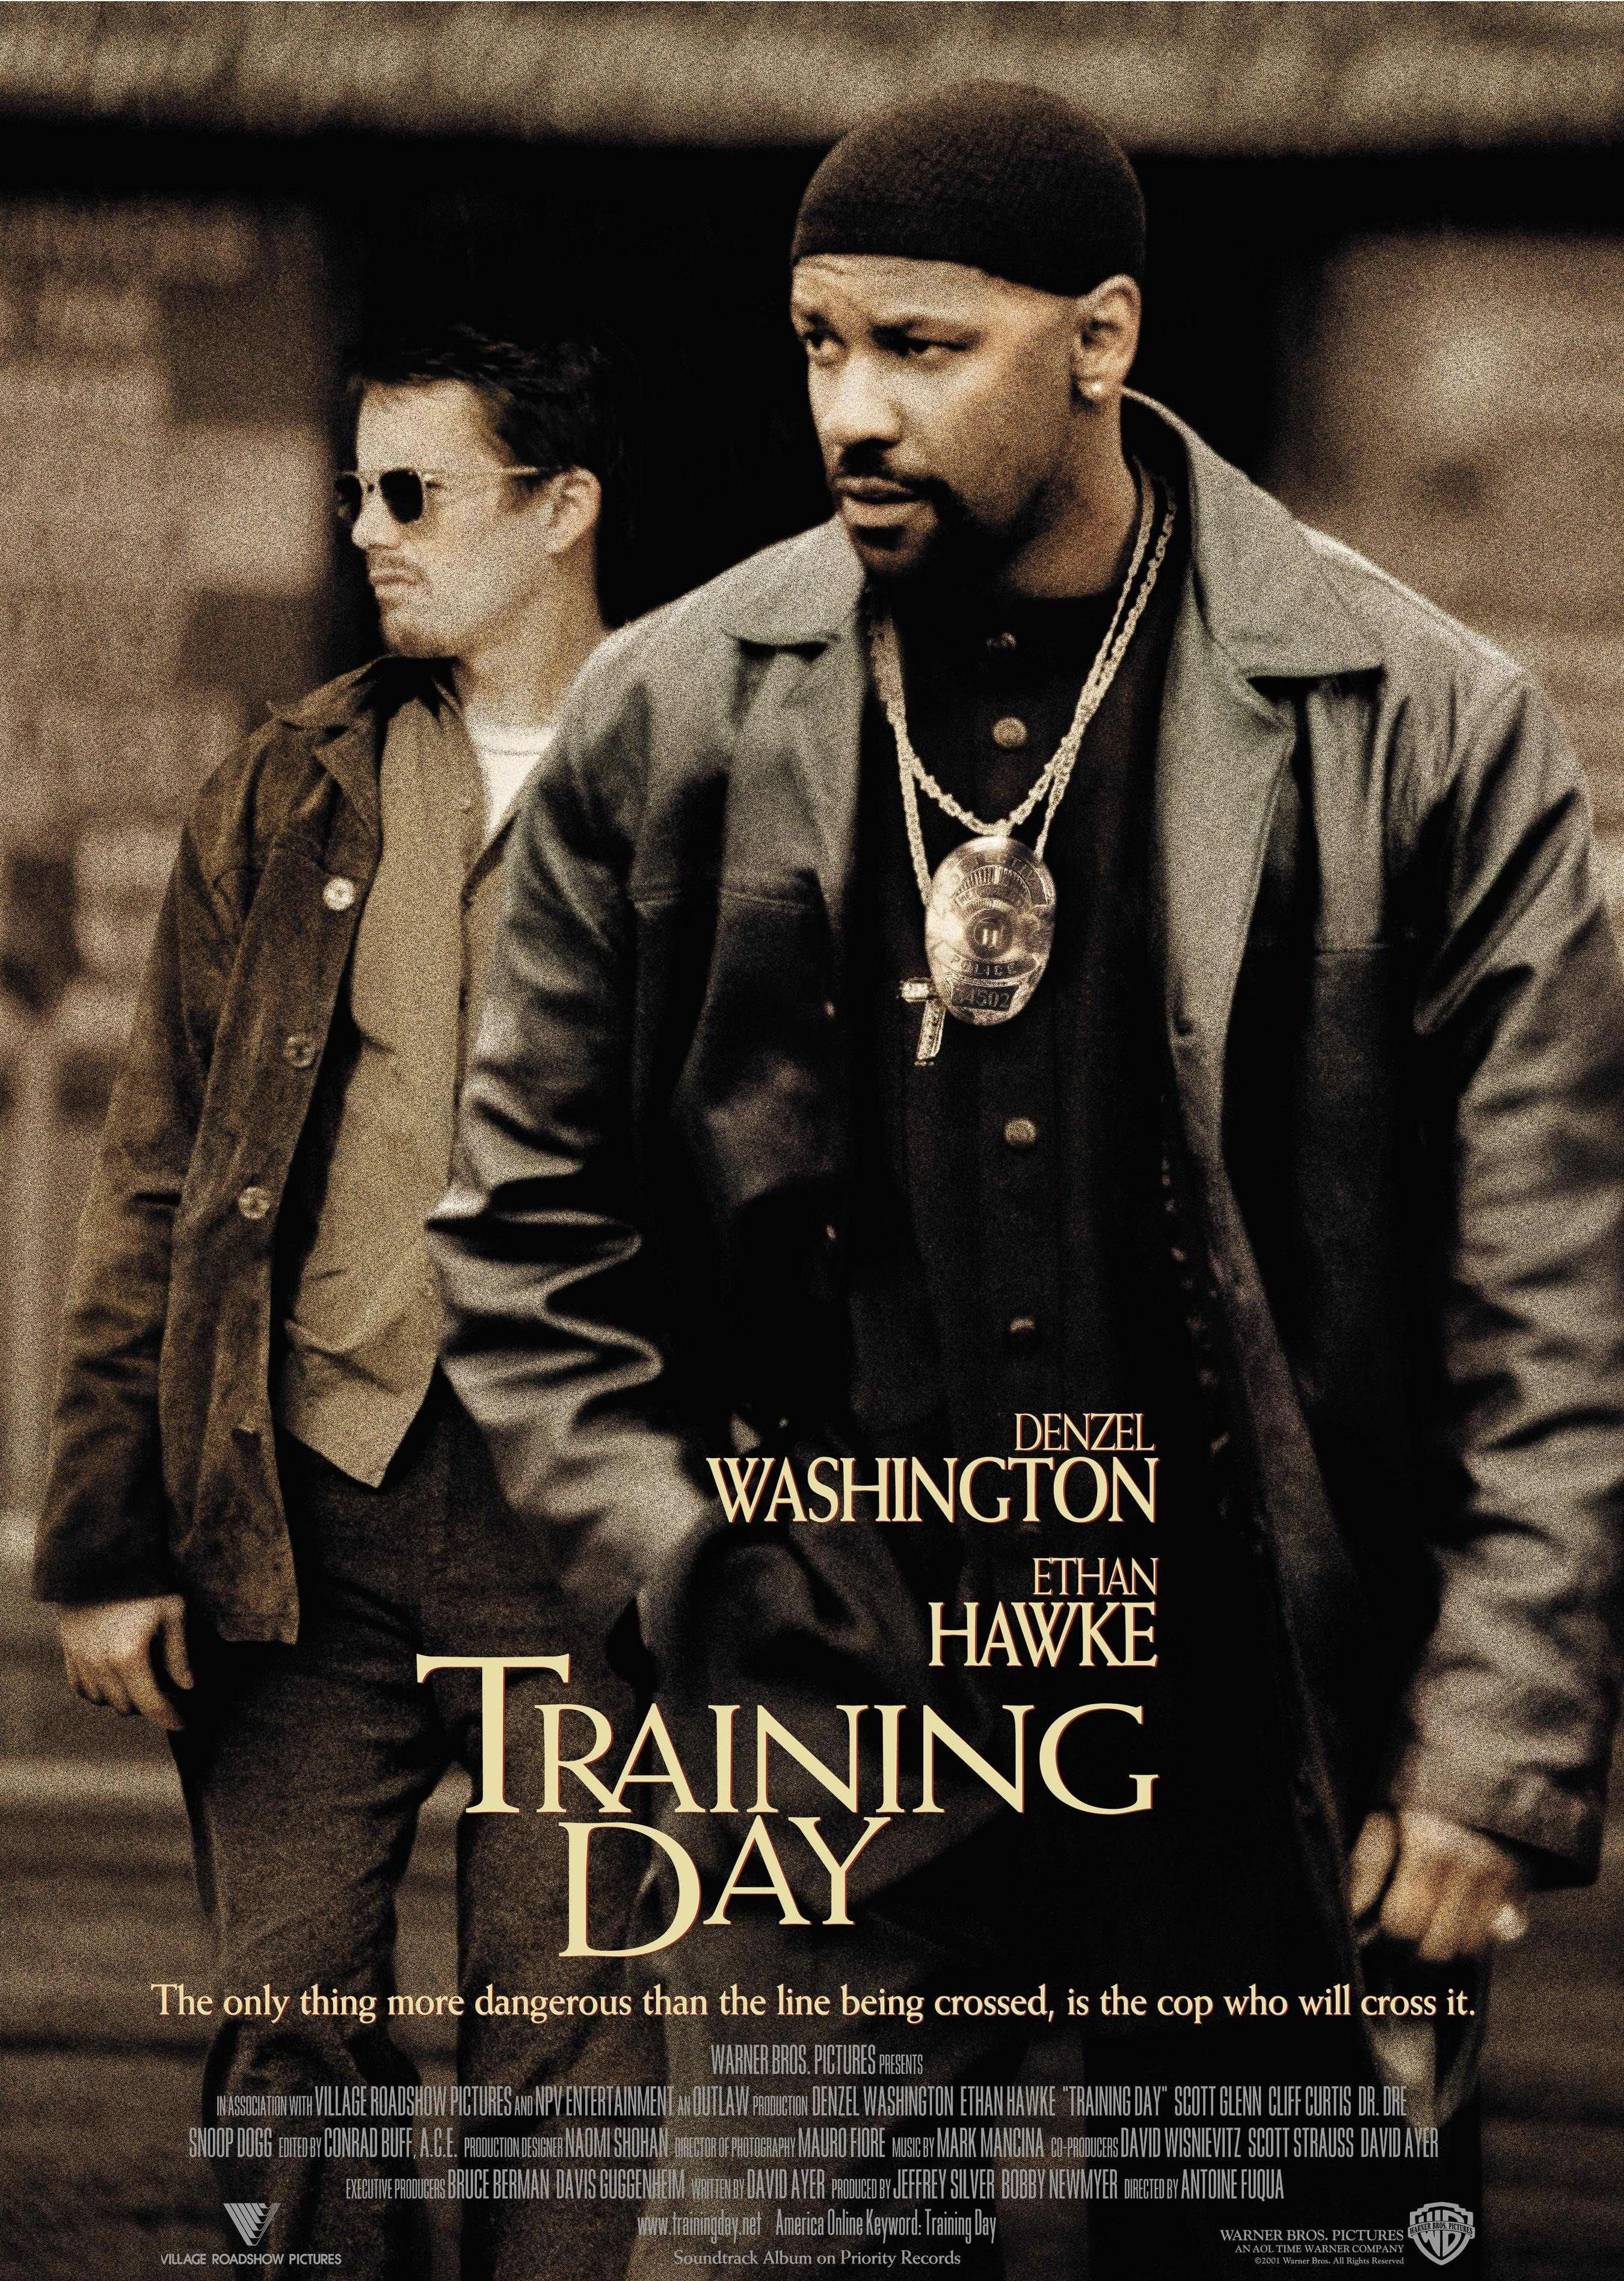 Training Day In 2001 Directed By Antoine Fuqua Pittsburgh 1966